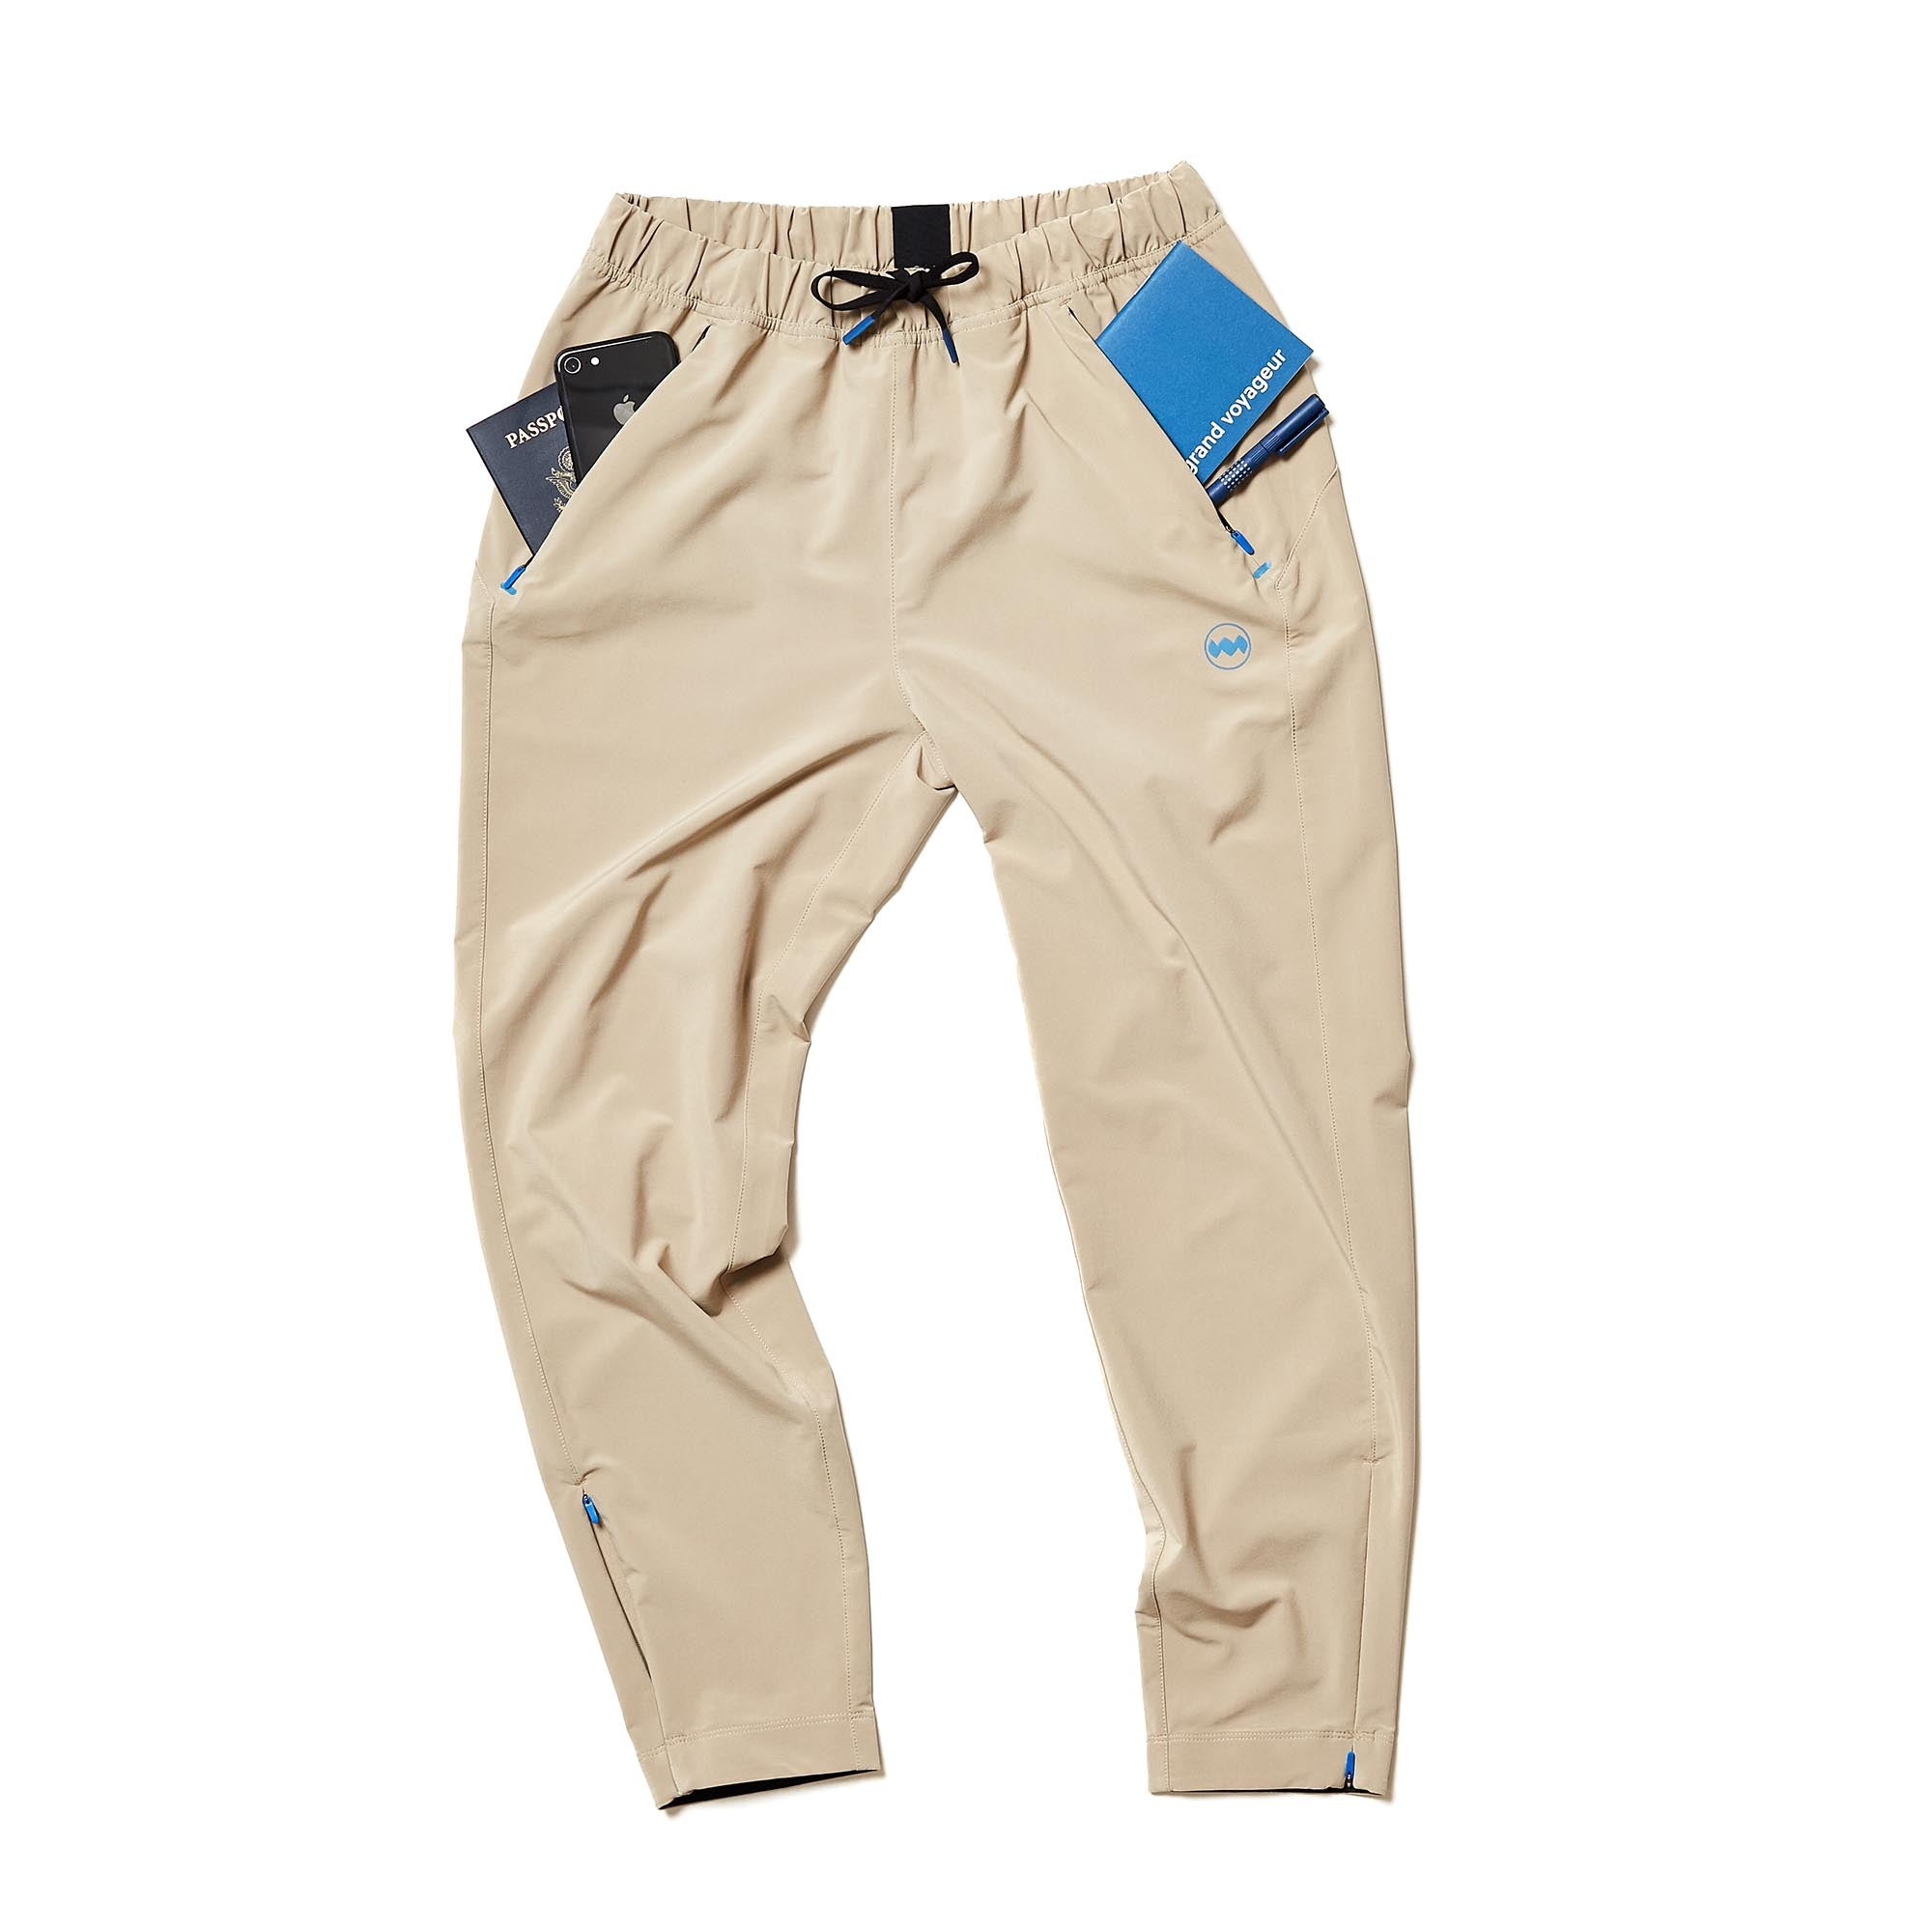 W's Transit Tech Pant in Cobblestone